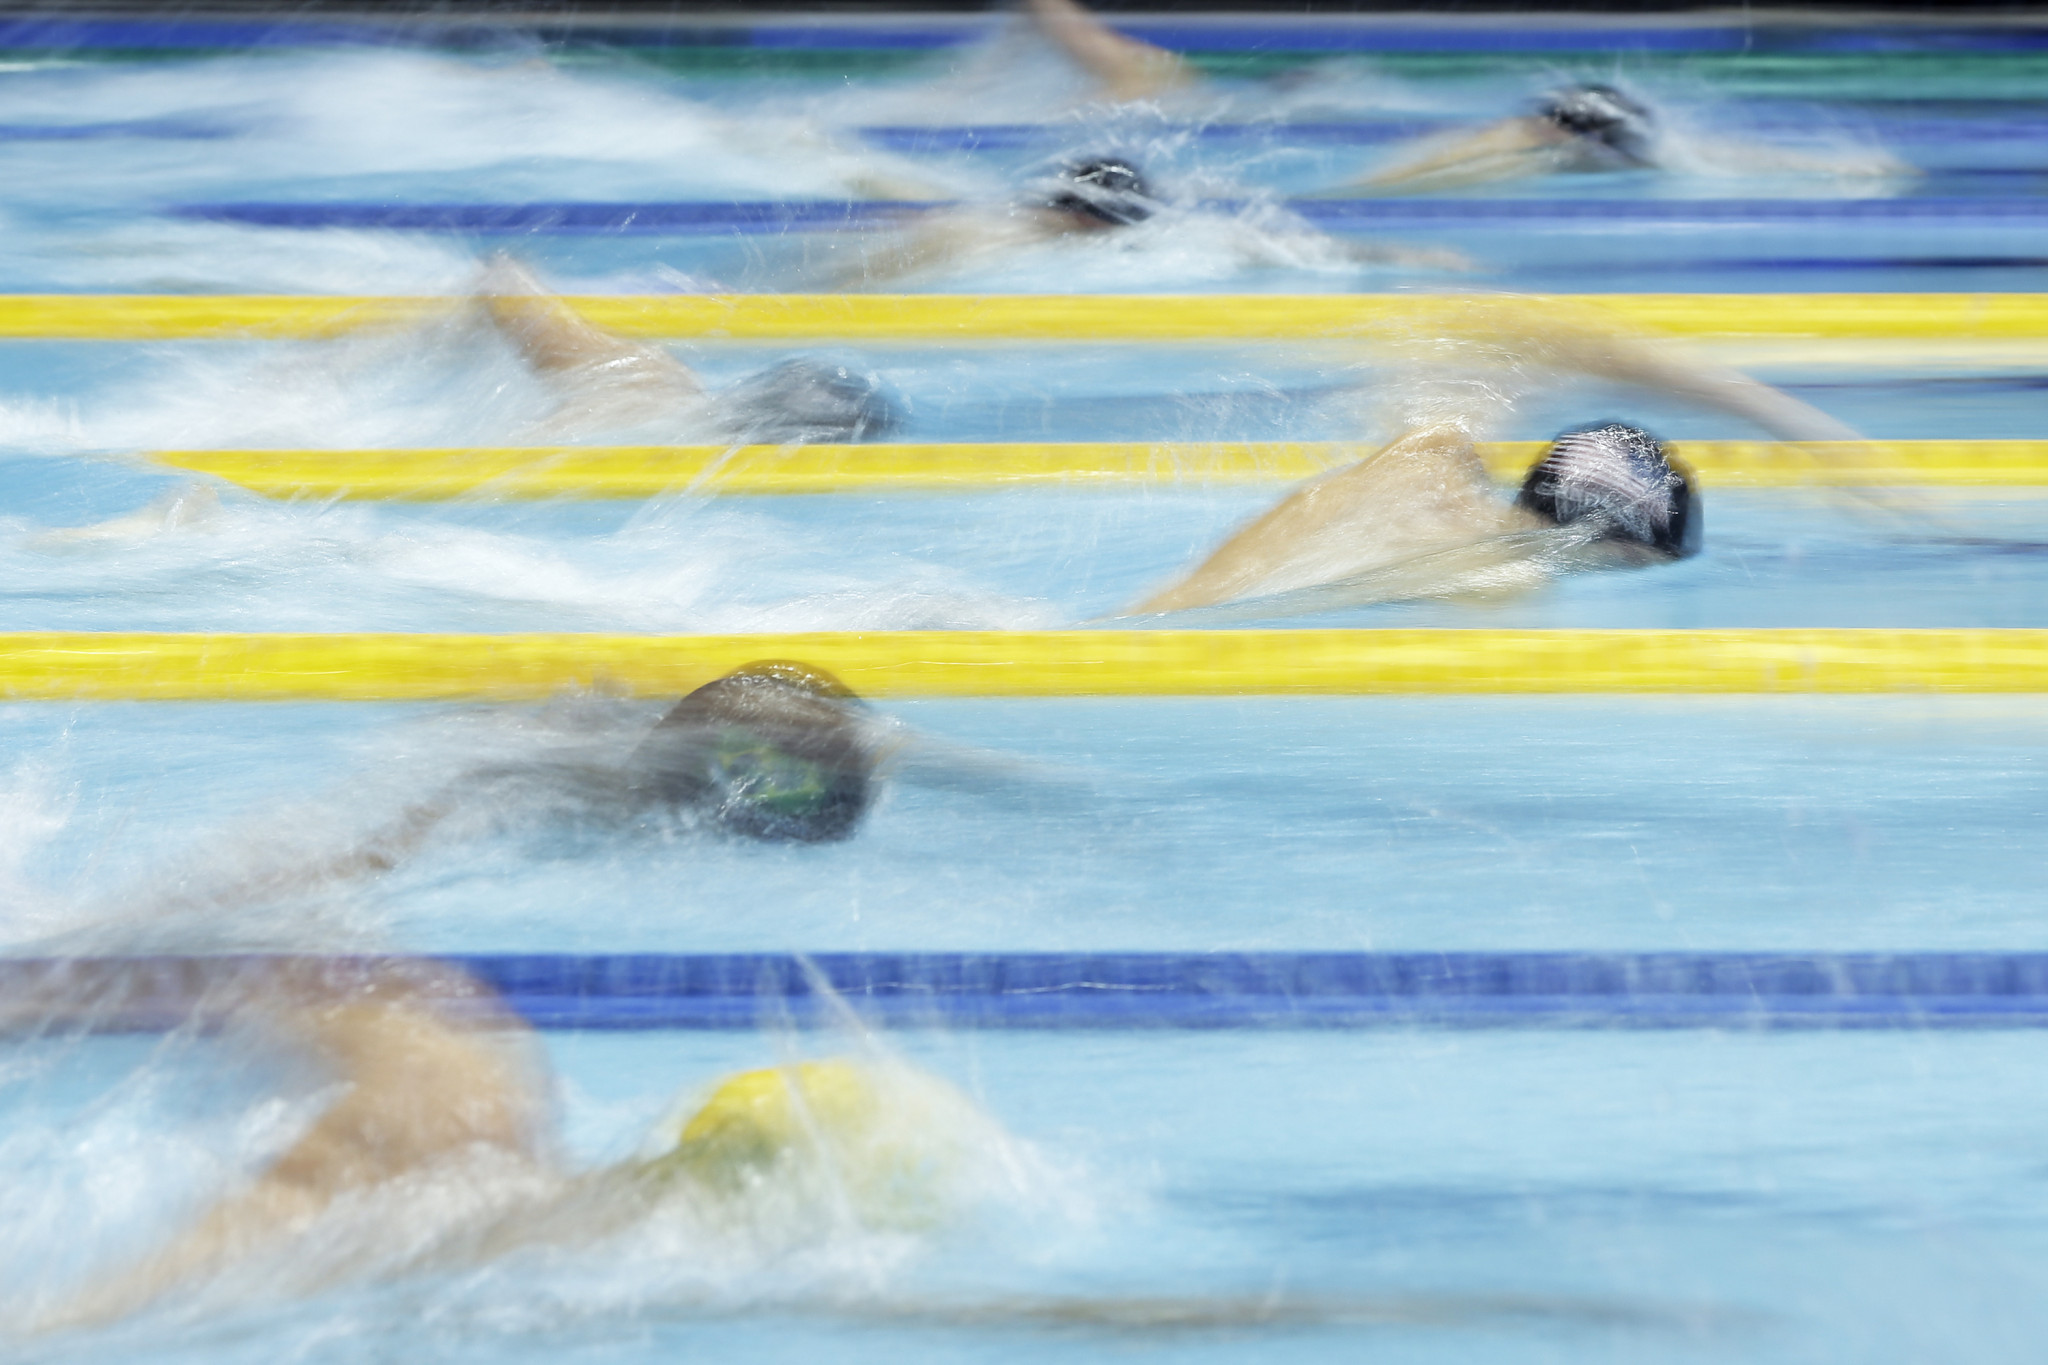 Calendar congestion sees 2022 Pan Pacific Swimming Championships deferred to 2026